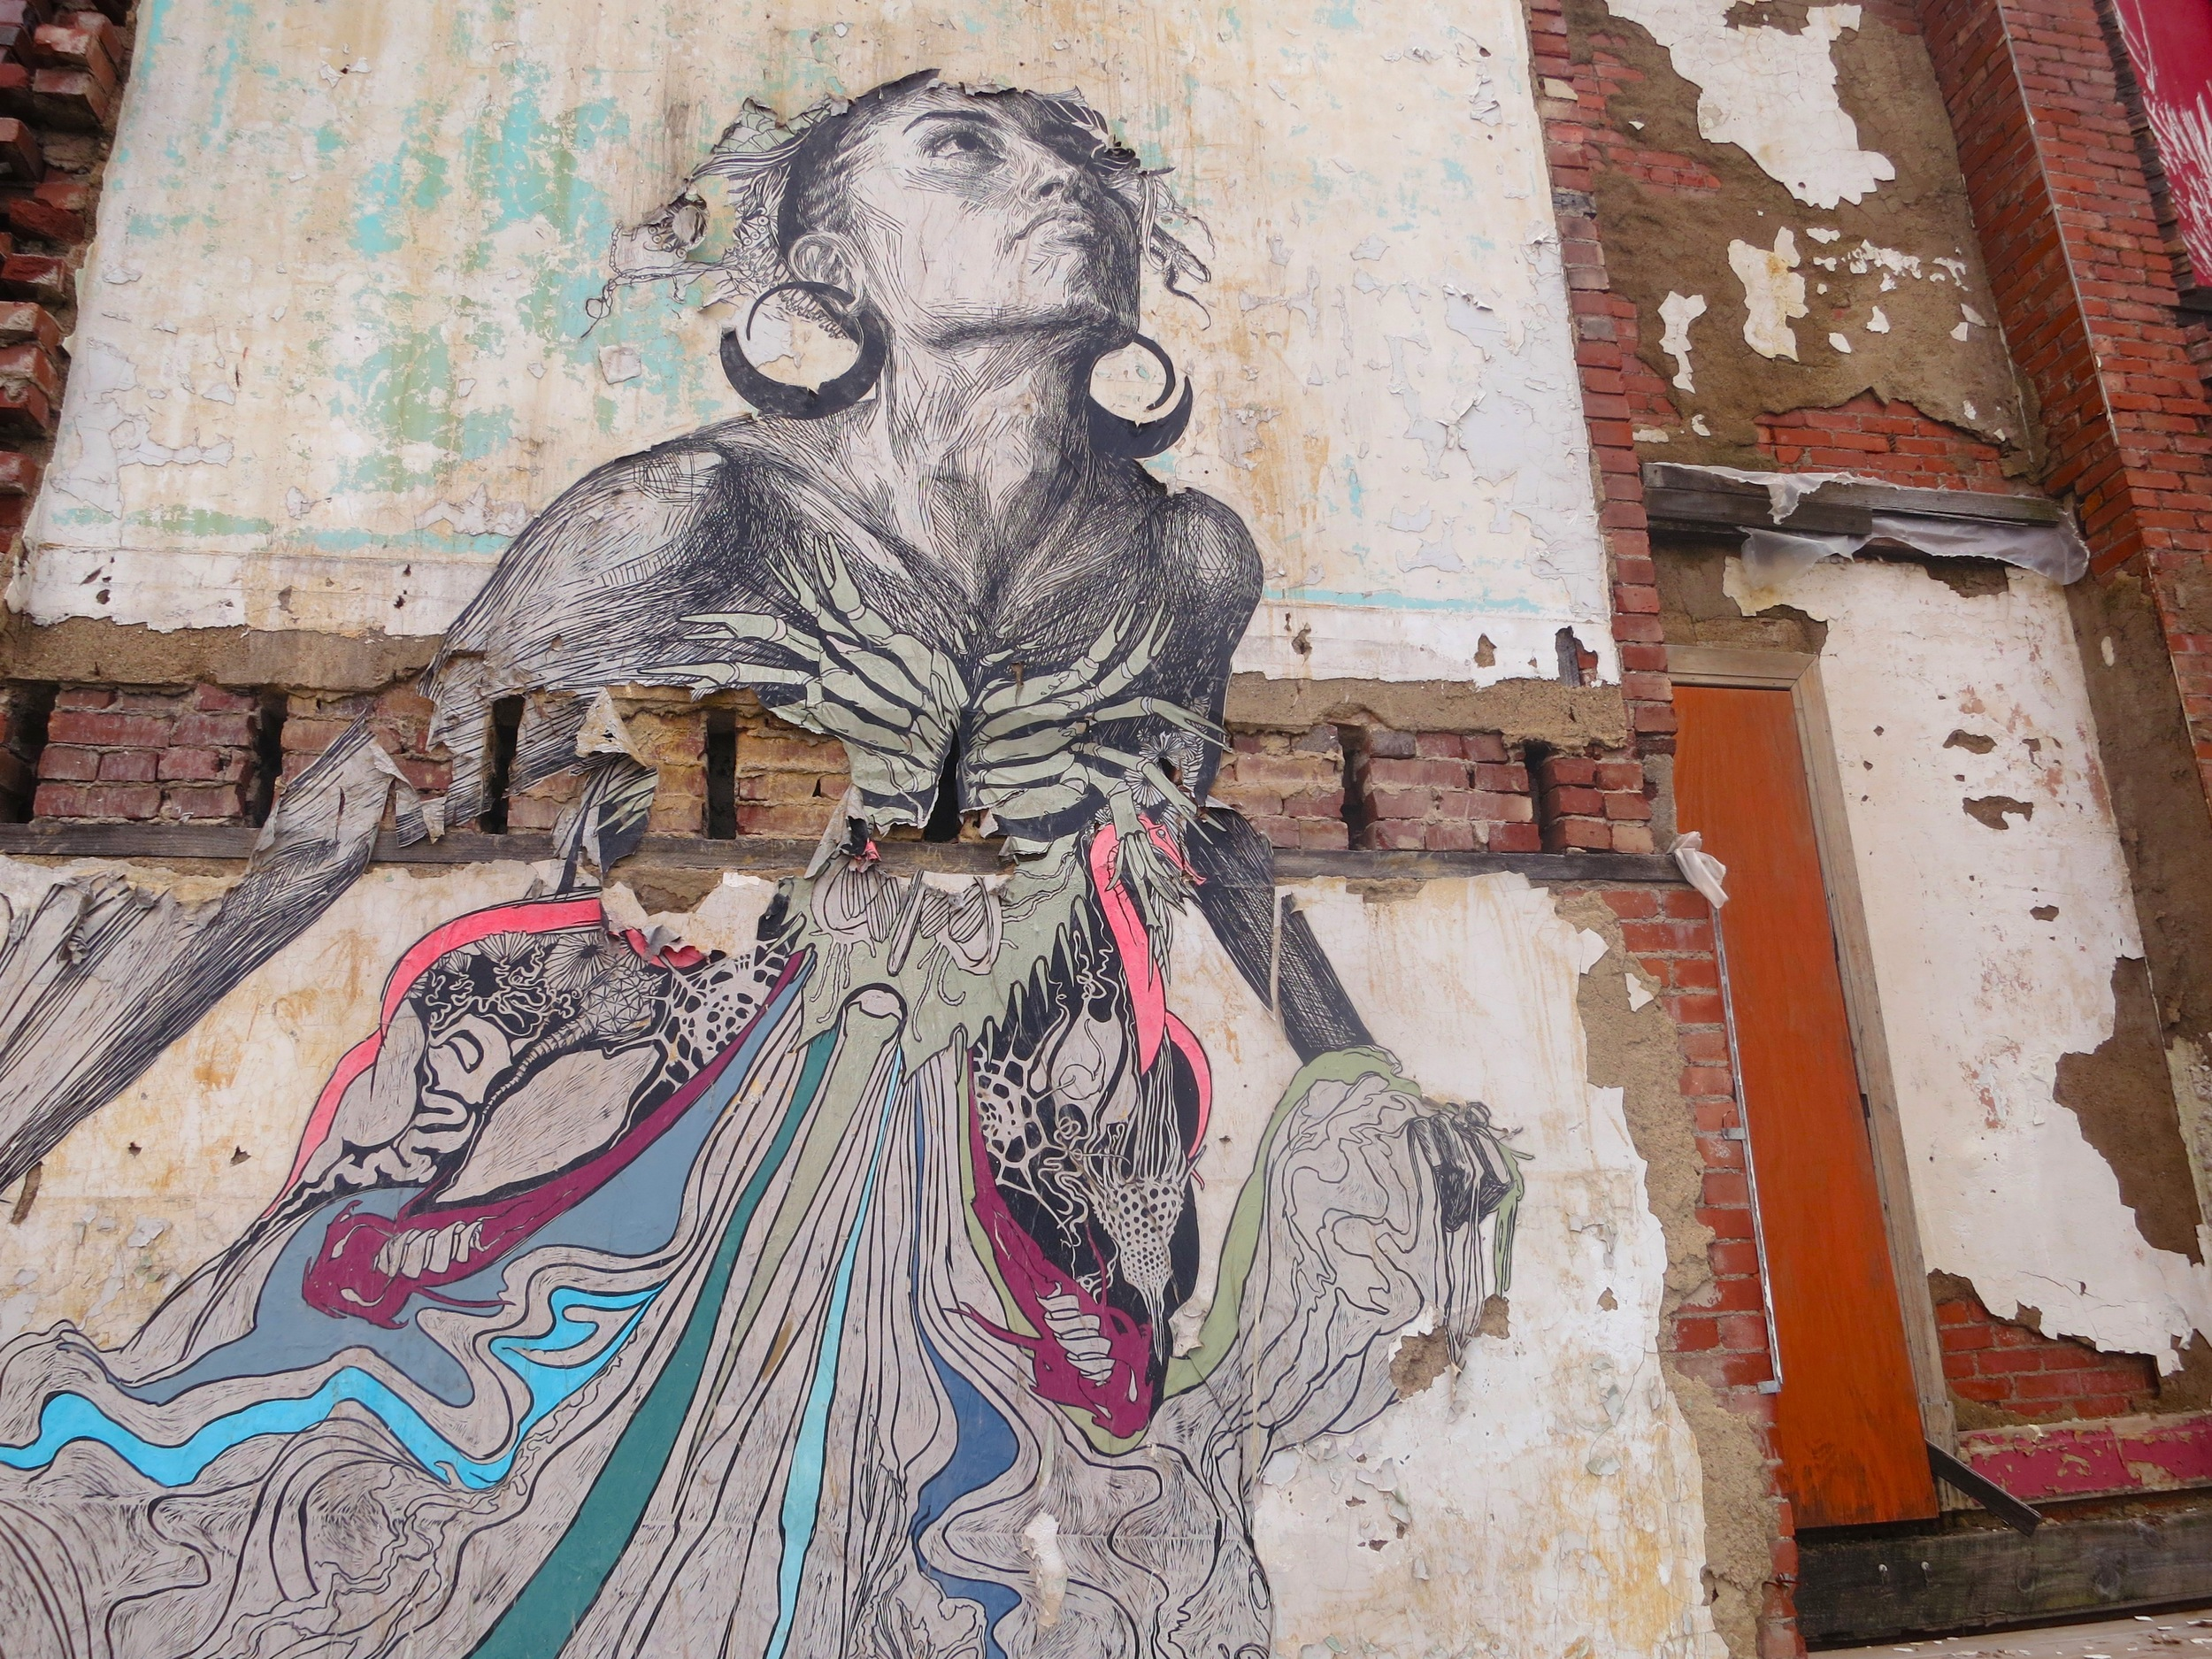 An example of the portraiture motifs Swoon employs across her work, the sea goddess Thalassa was the subject of a site-specific installation at the New Orleans Museum of Art as well as a two-story paste on the exterior of an abandoned church in Braddock, Pennsylvania. ( Photo : Tod Seelie)